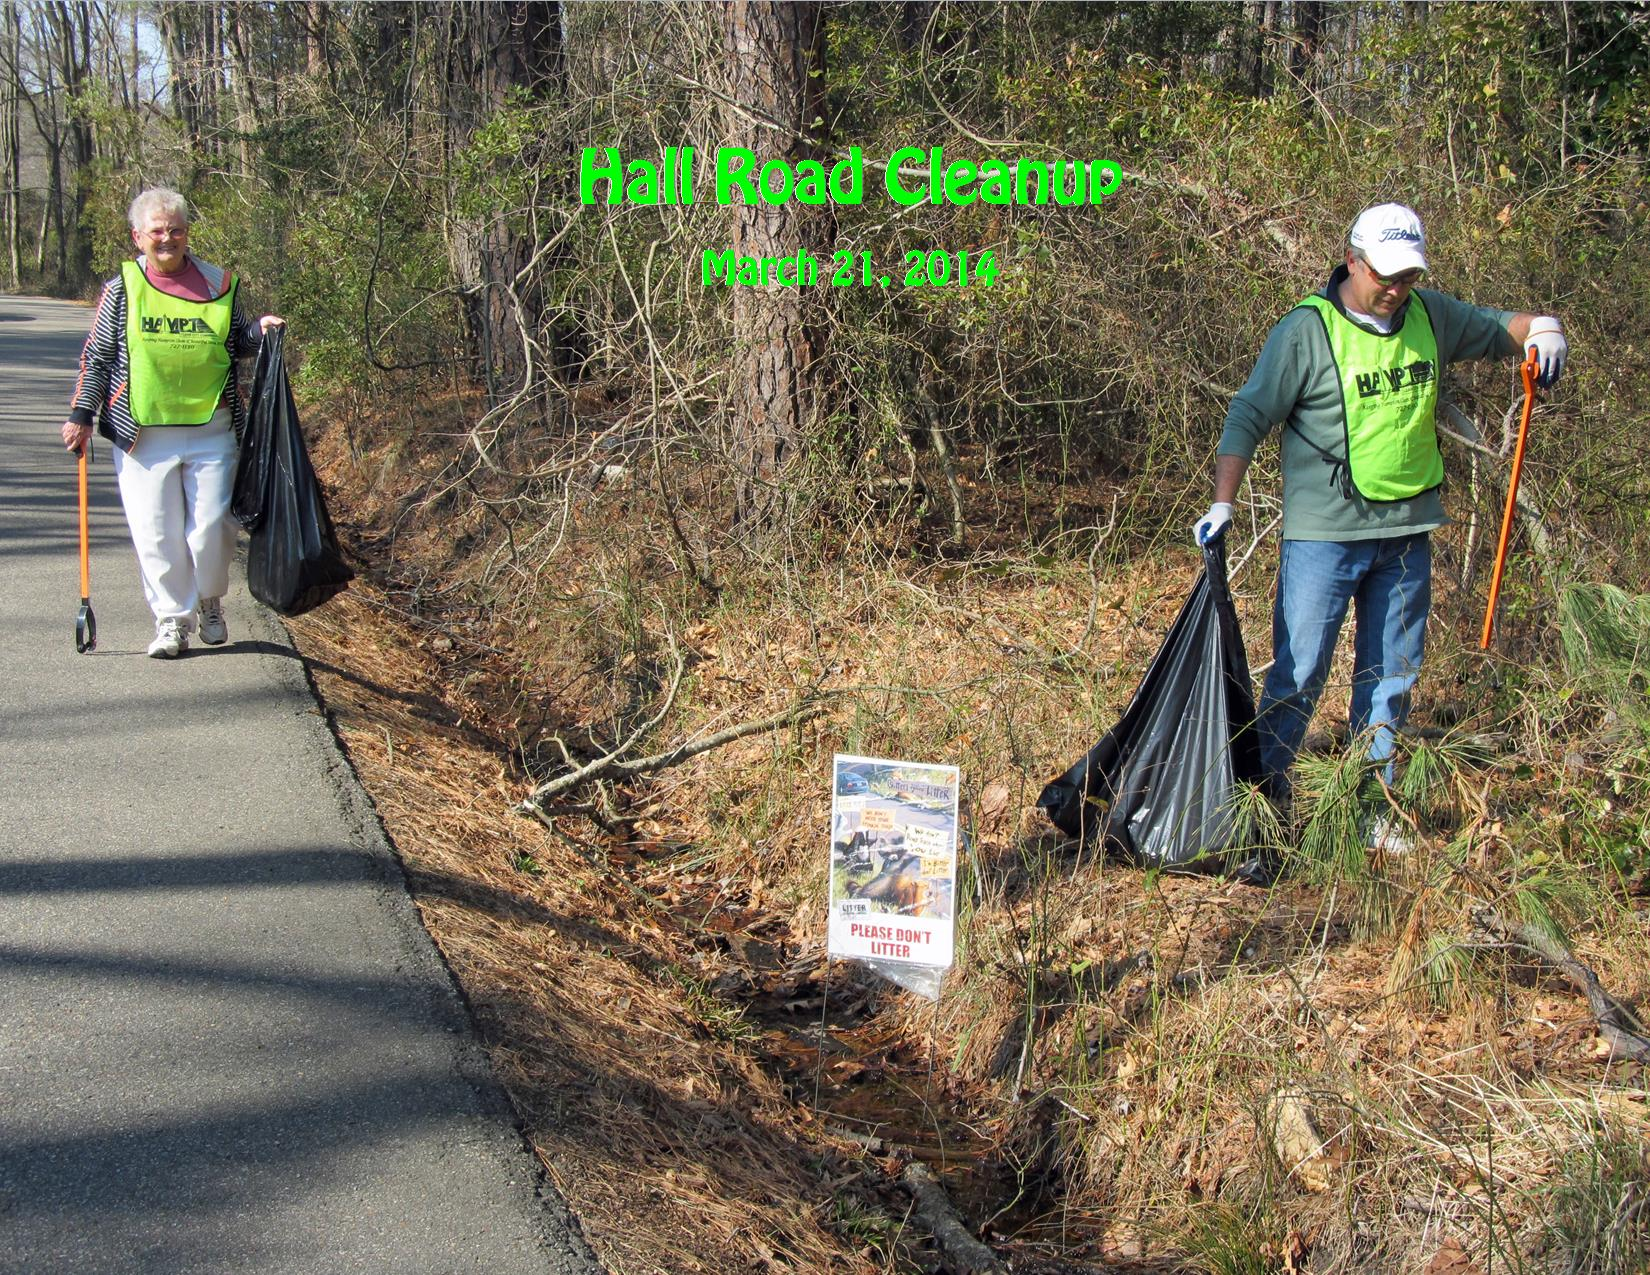 3-21-14 Hall Road Cleanup